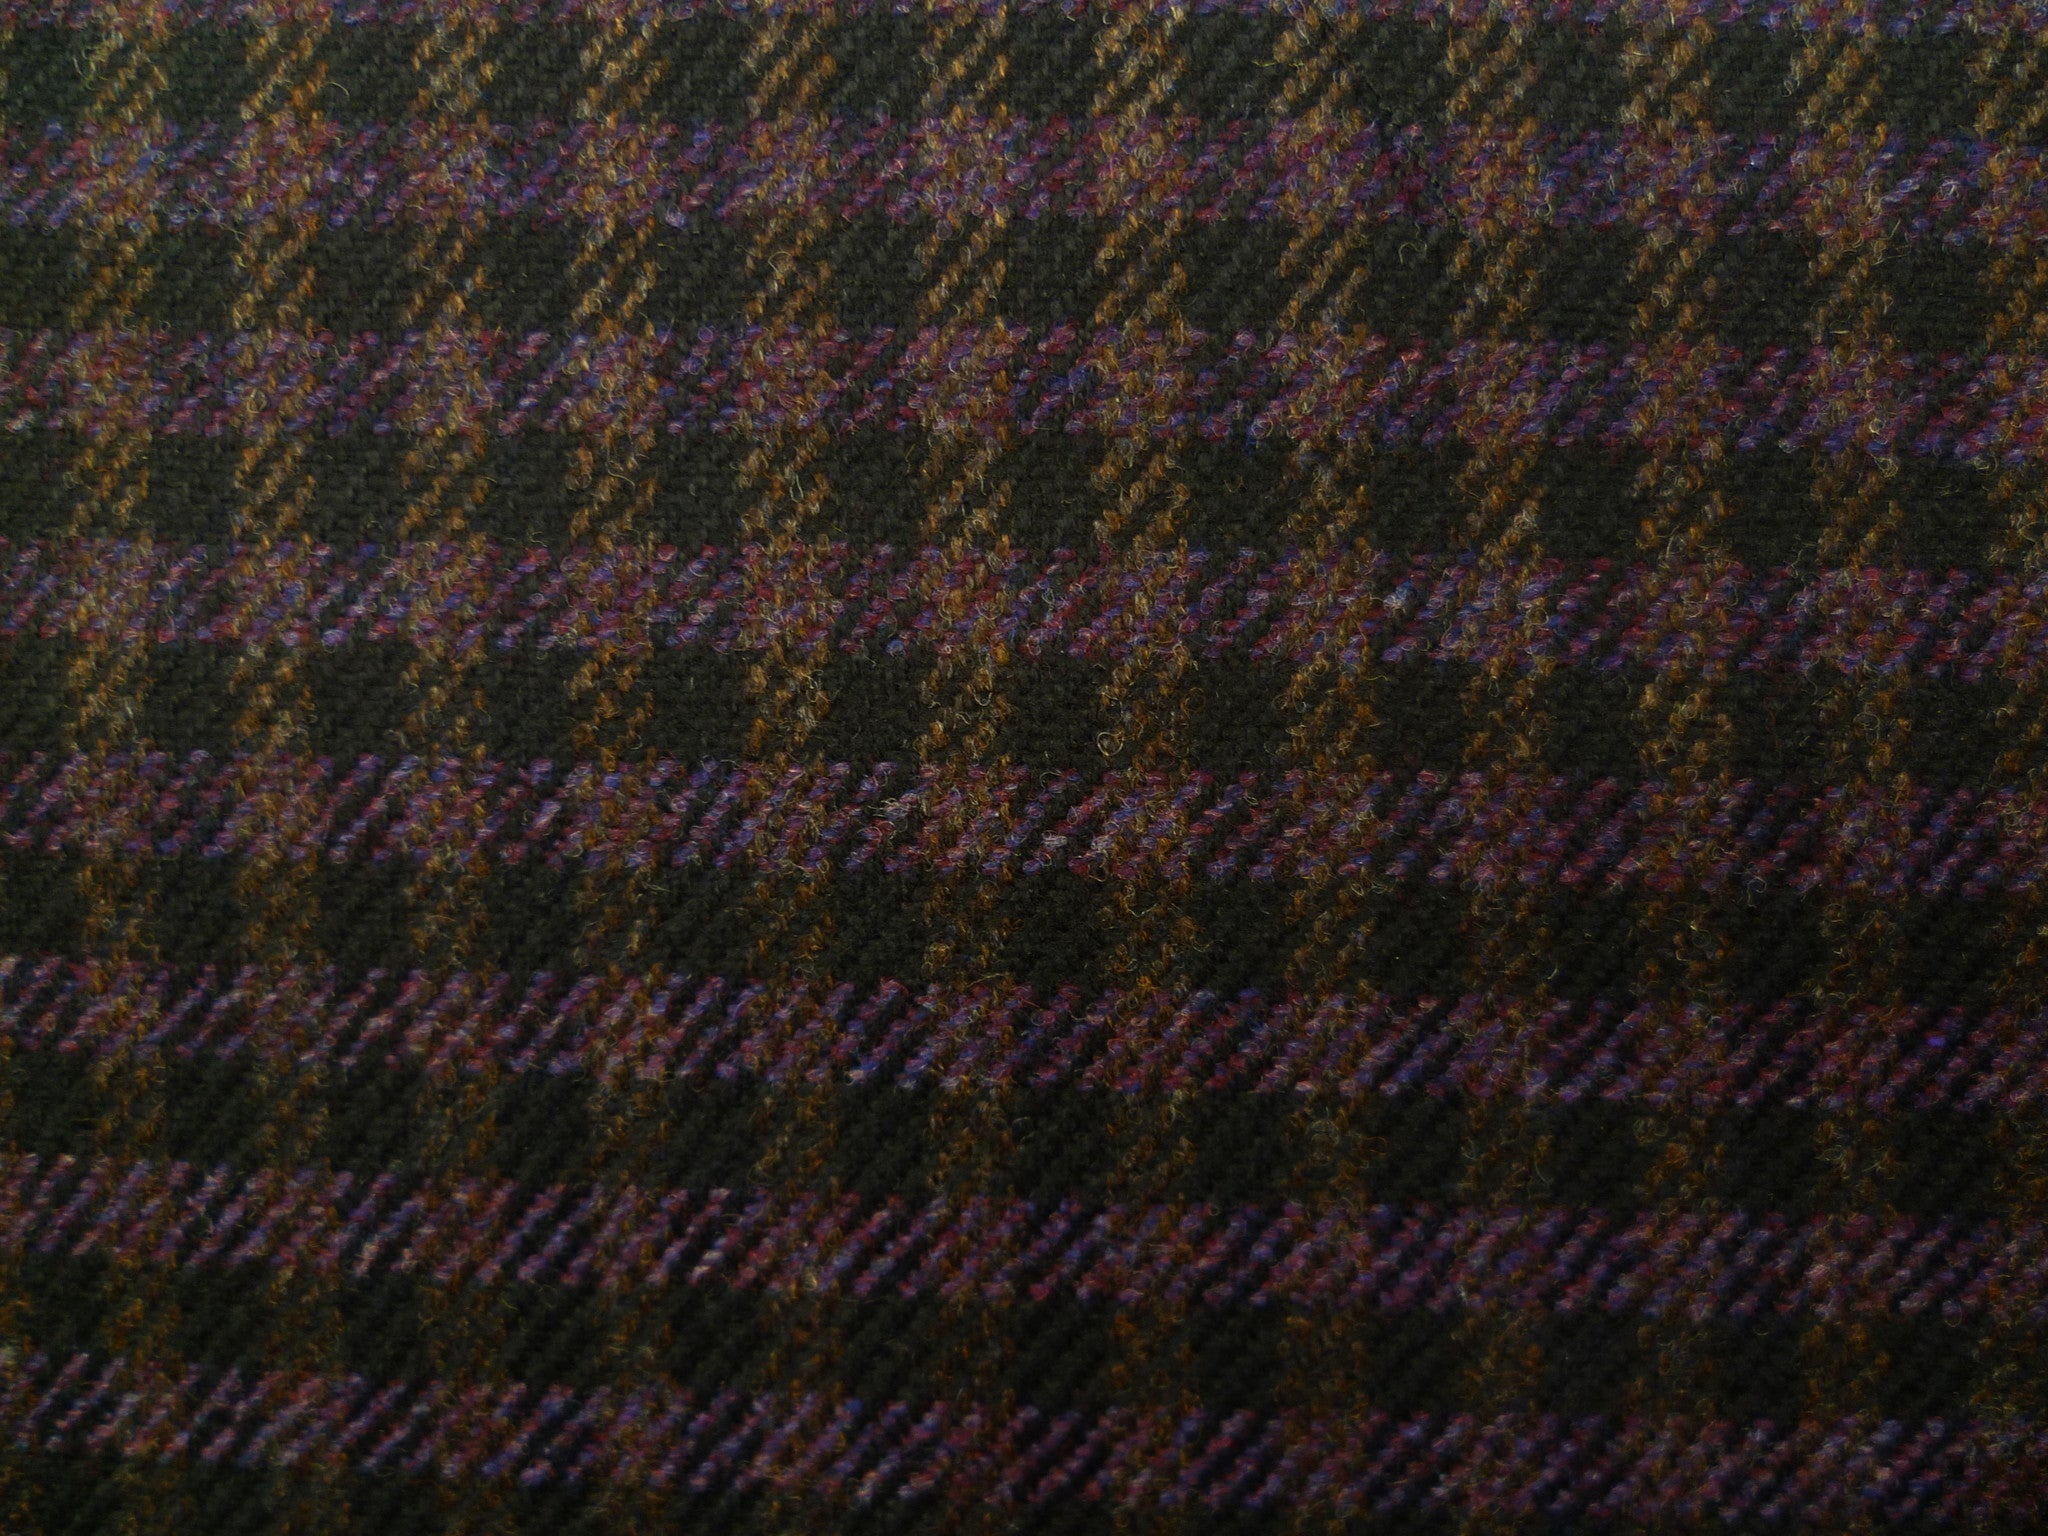 Plum-Purple and Black Houndstooth Wool